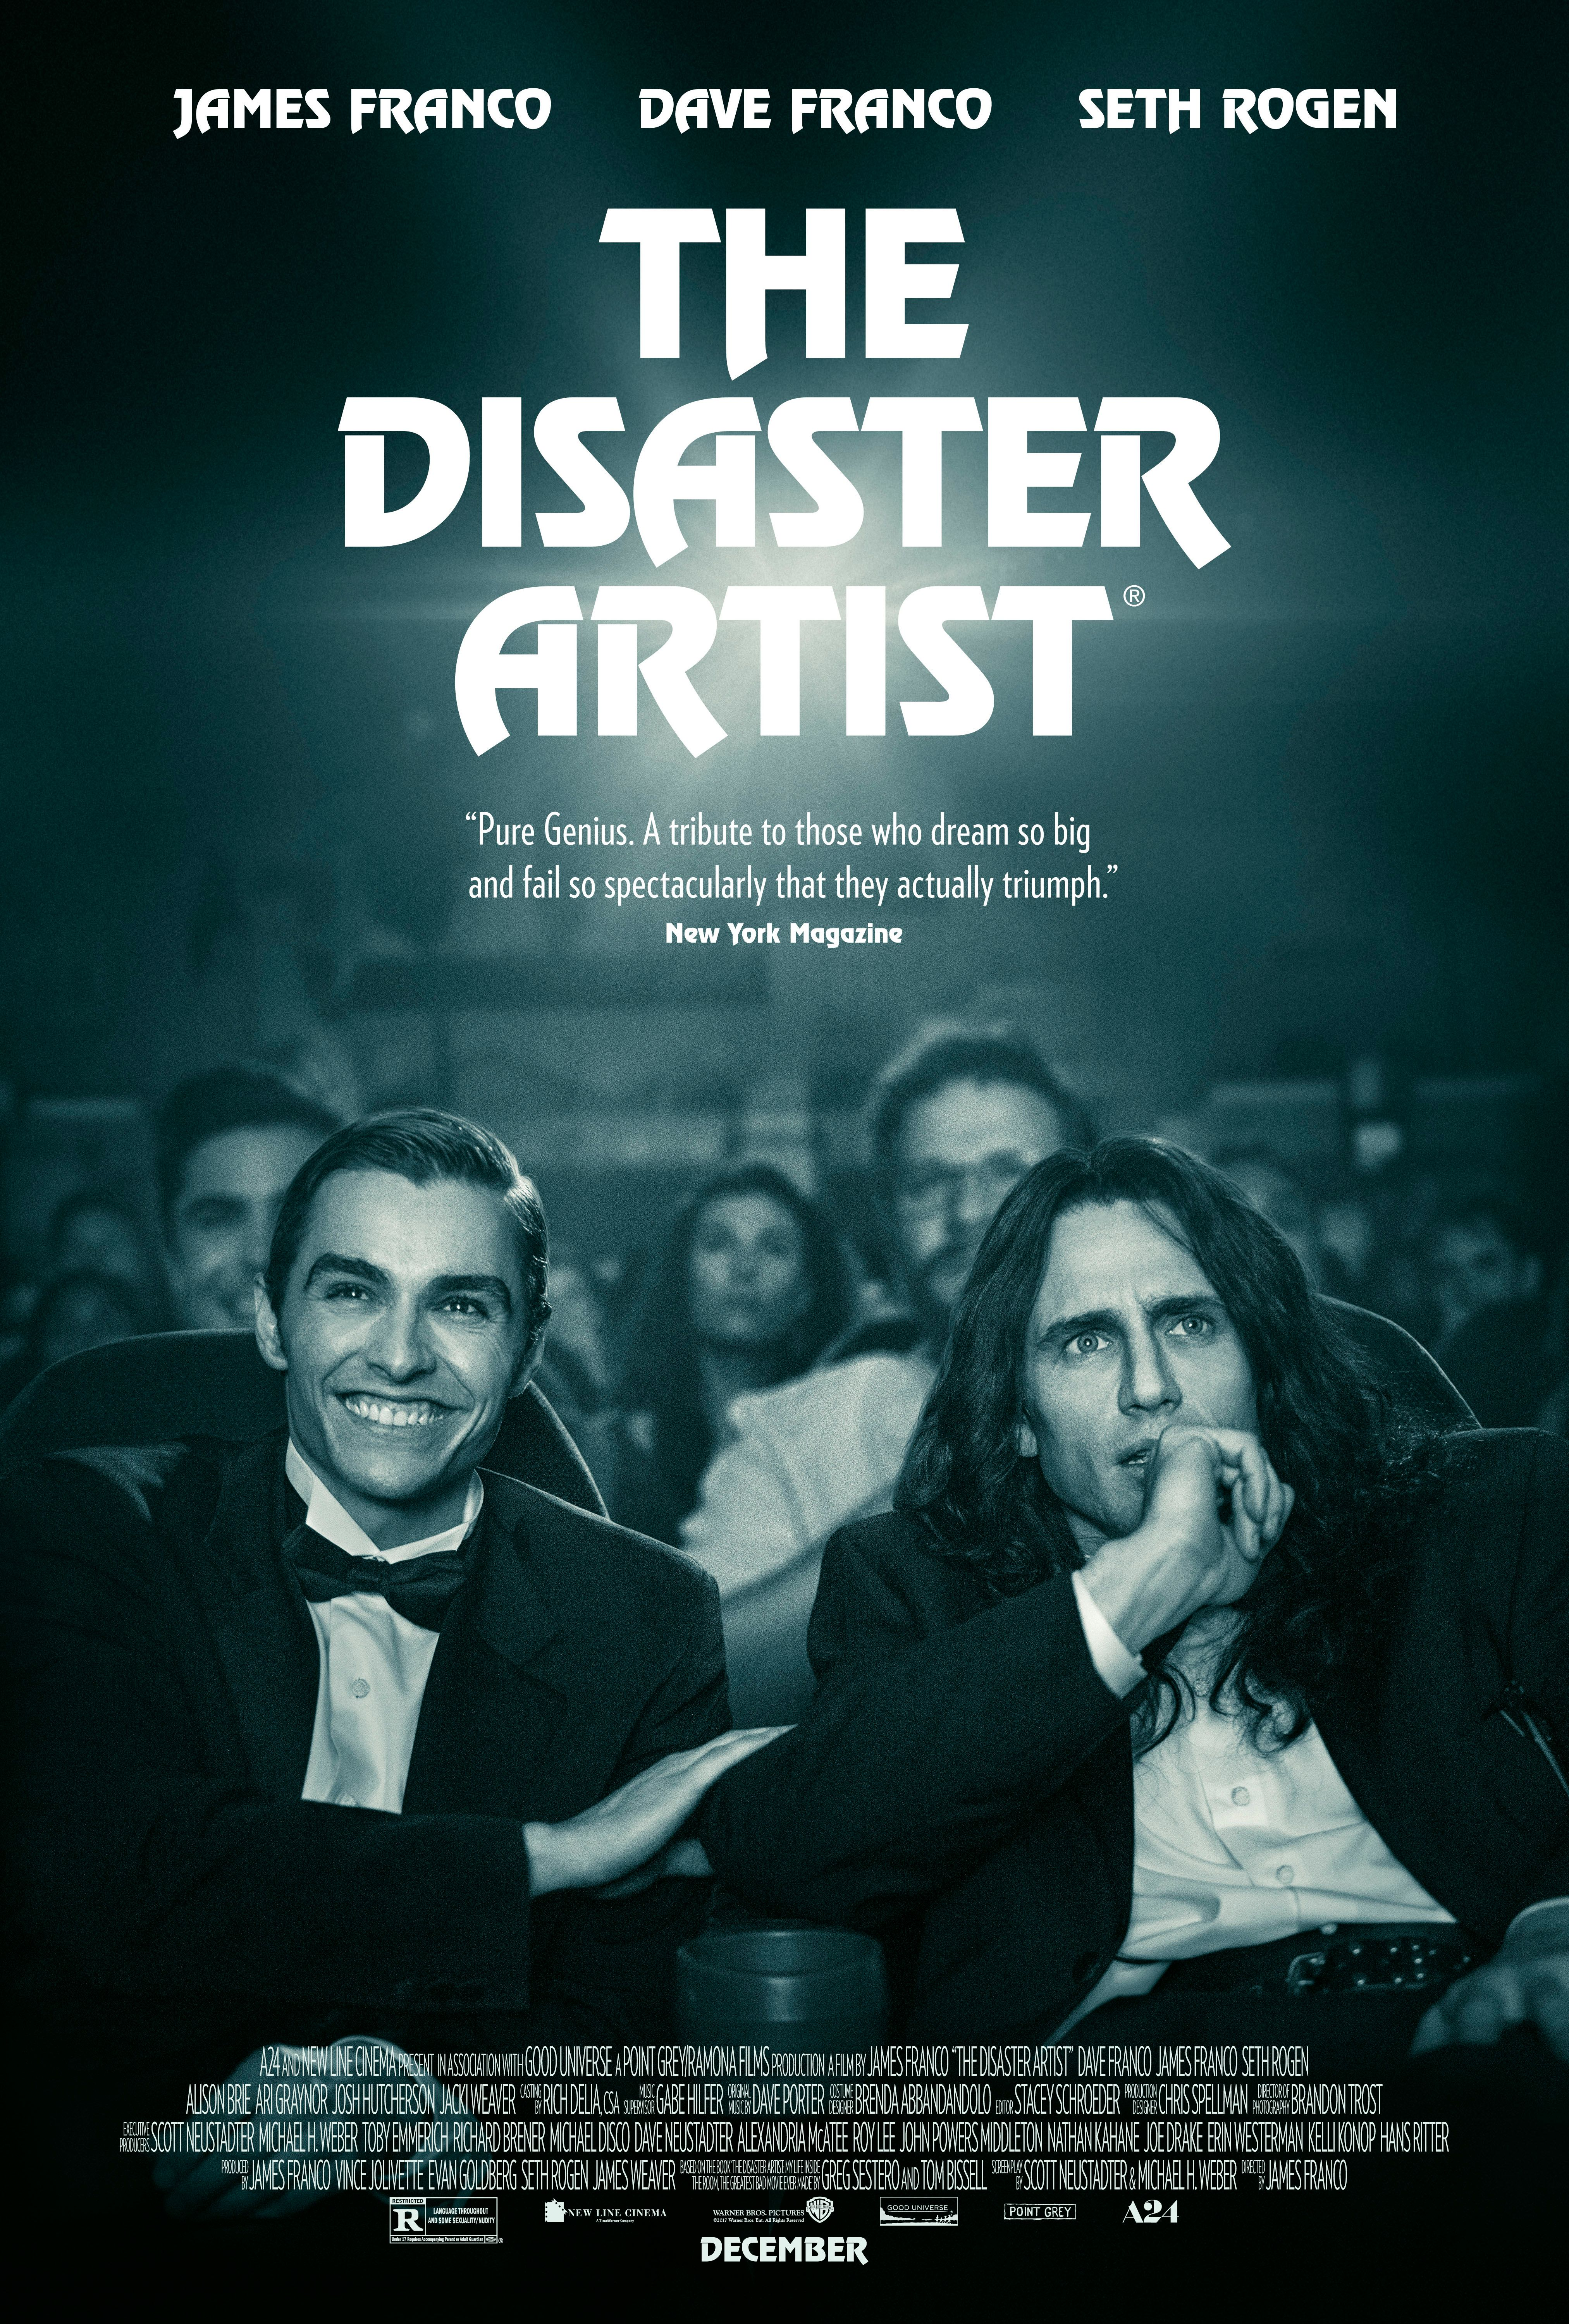 Prepare for The Disaster Artist by Seeing The Room for Free | Collider